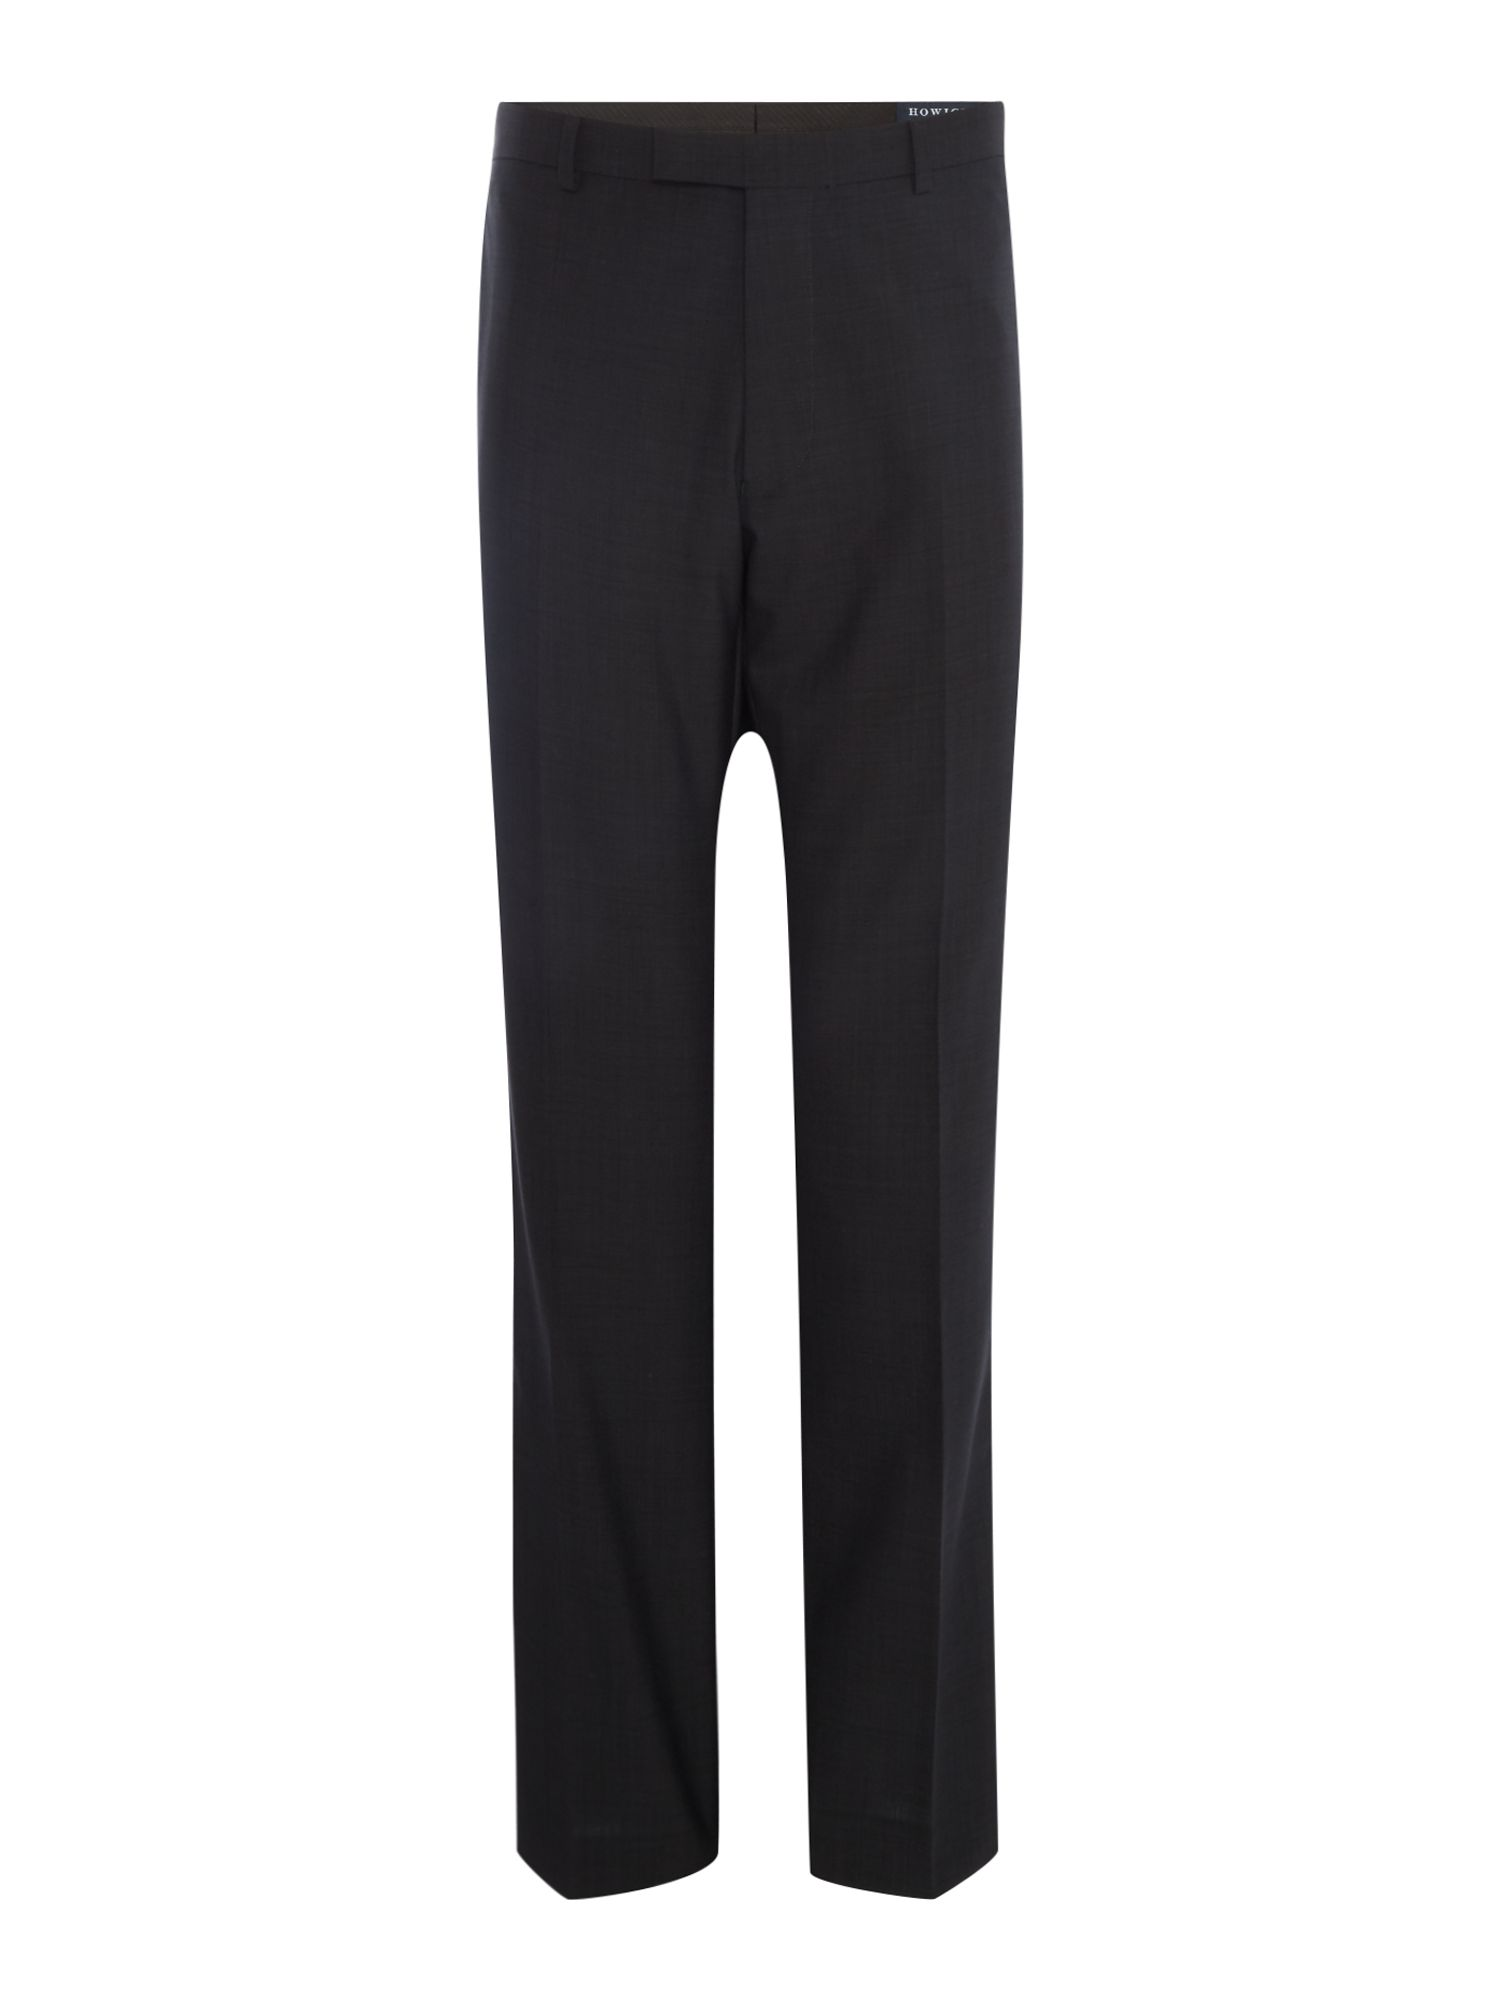 Howick Tailored Men's Howick Tailored Delaware suit trousers, Charcoal